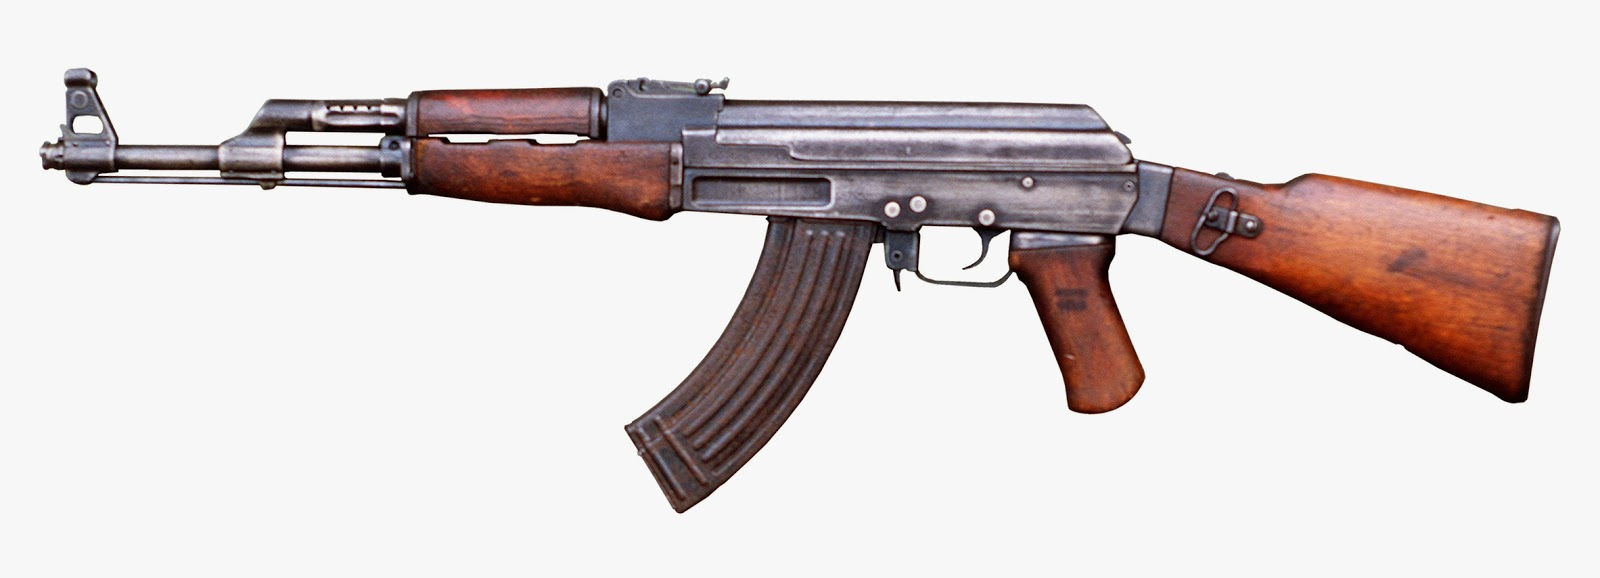 ak 47 the most used assault rifle on the face of the planet developed by the ussr